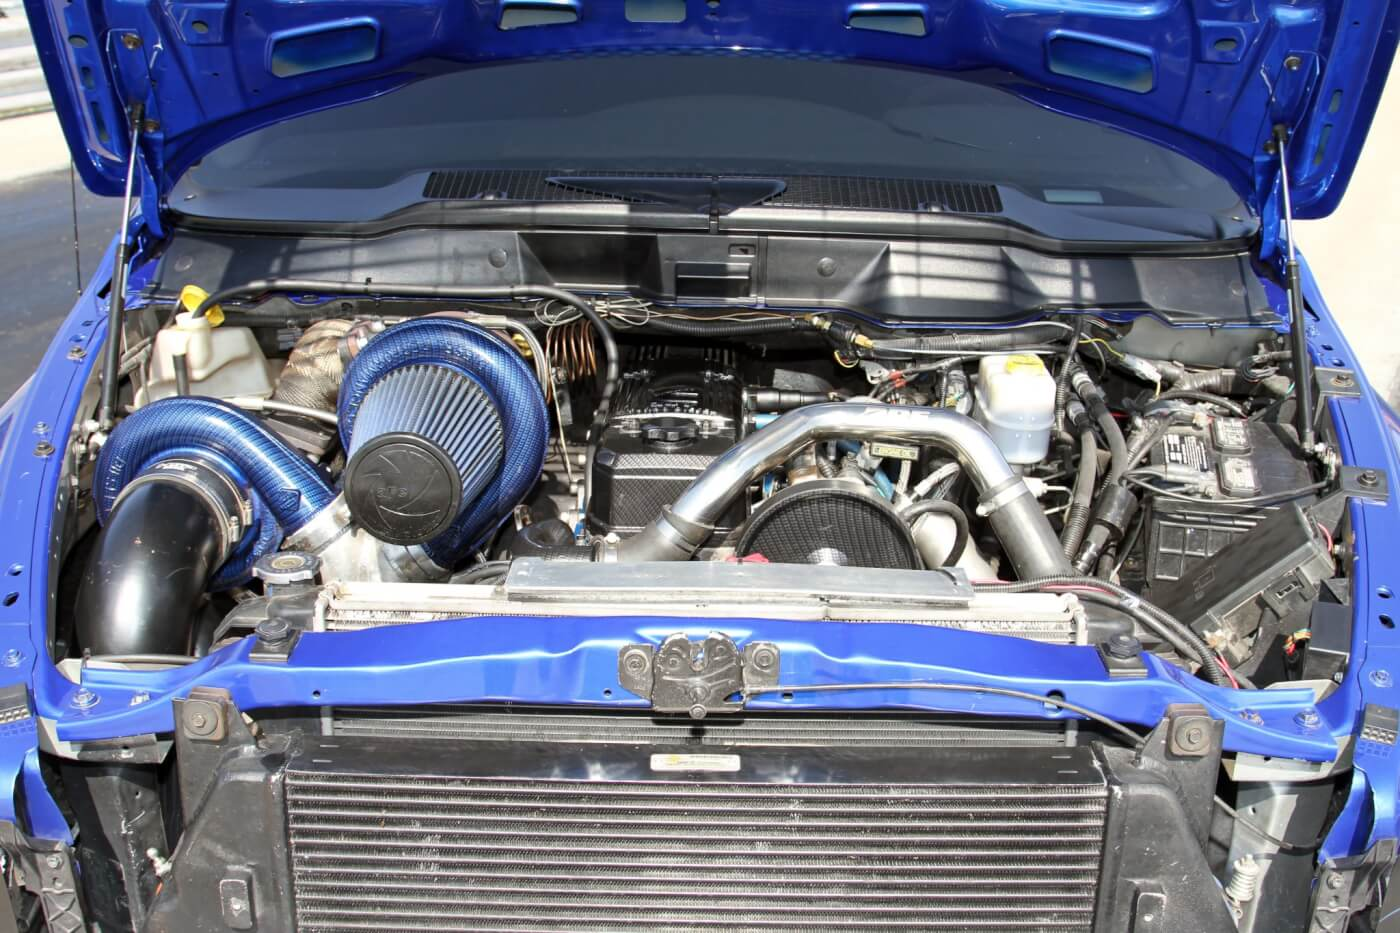 The heart of this beast is a triple-turbo 5.9L Cummins that makes 1,385 horsepower and 2,055 lb-ft of torque.